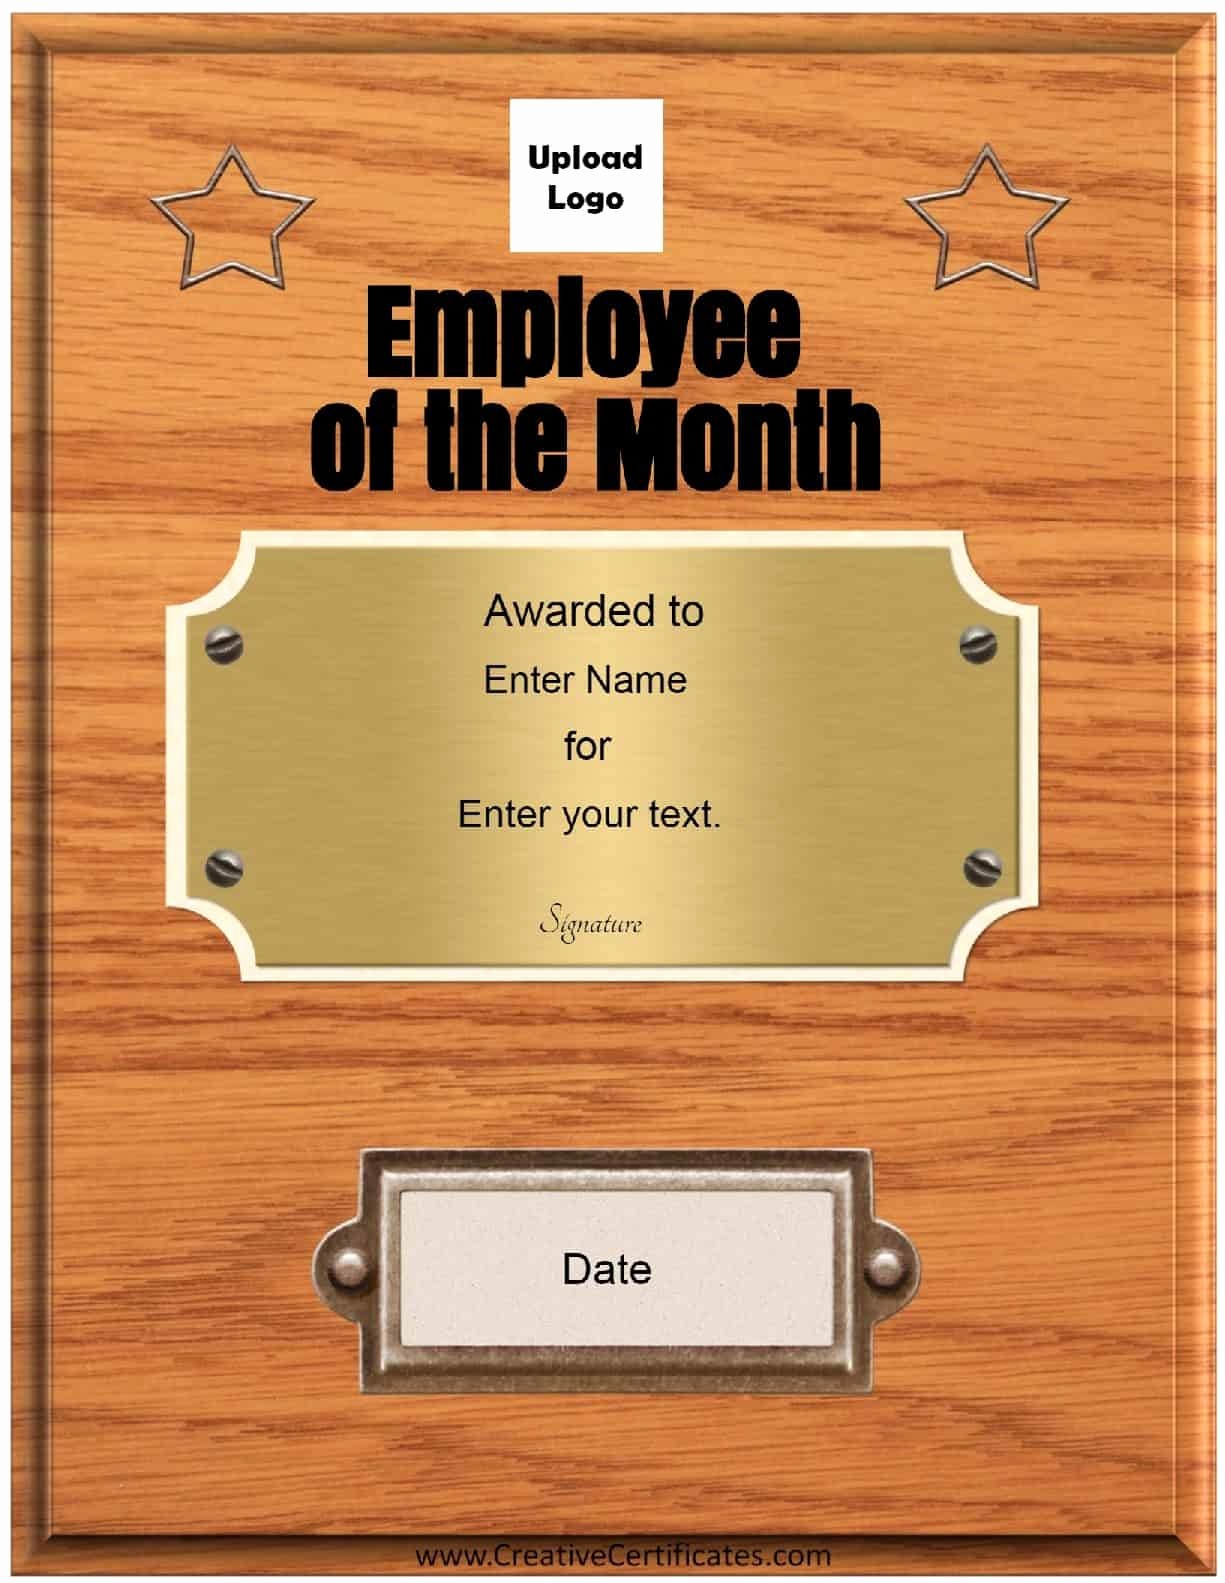 Employee Of the Month Free Elegant Free Custom Employee Of the Month Certificate